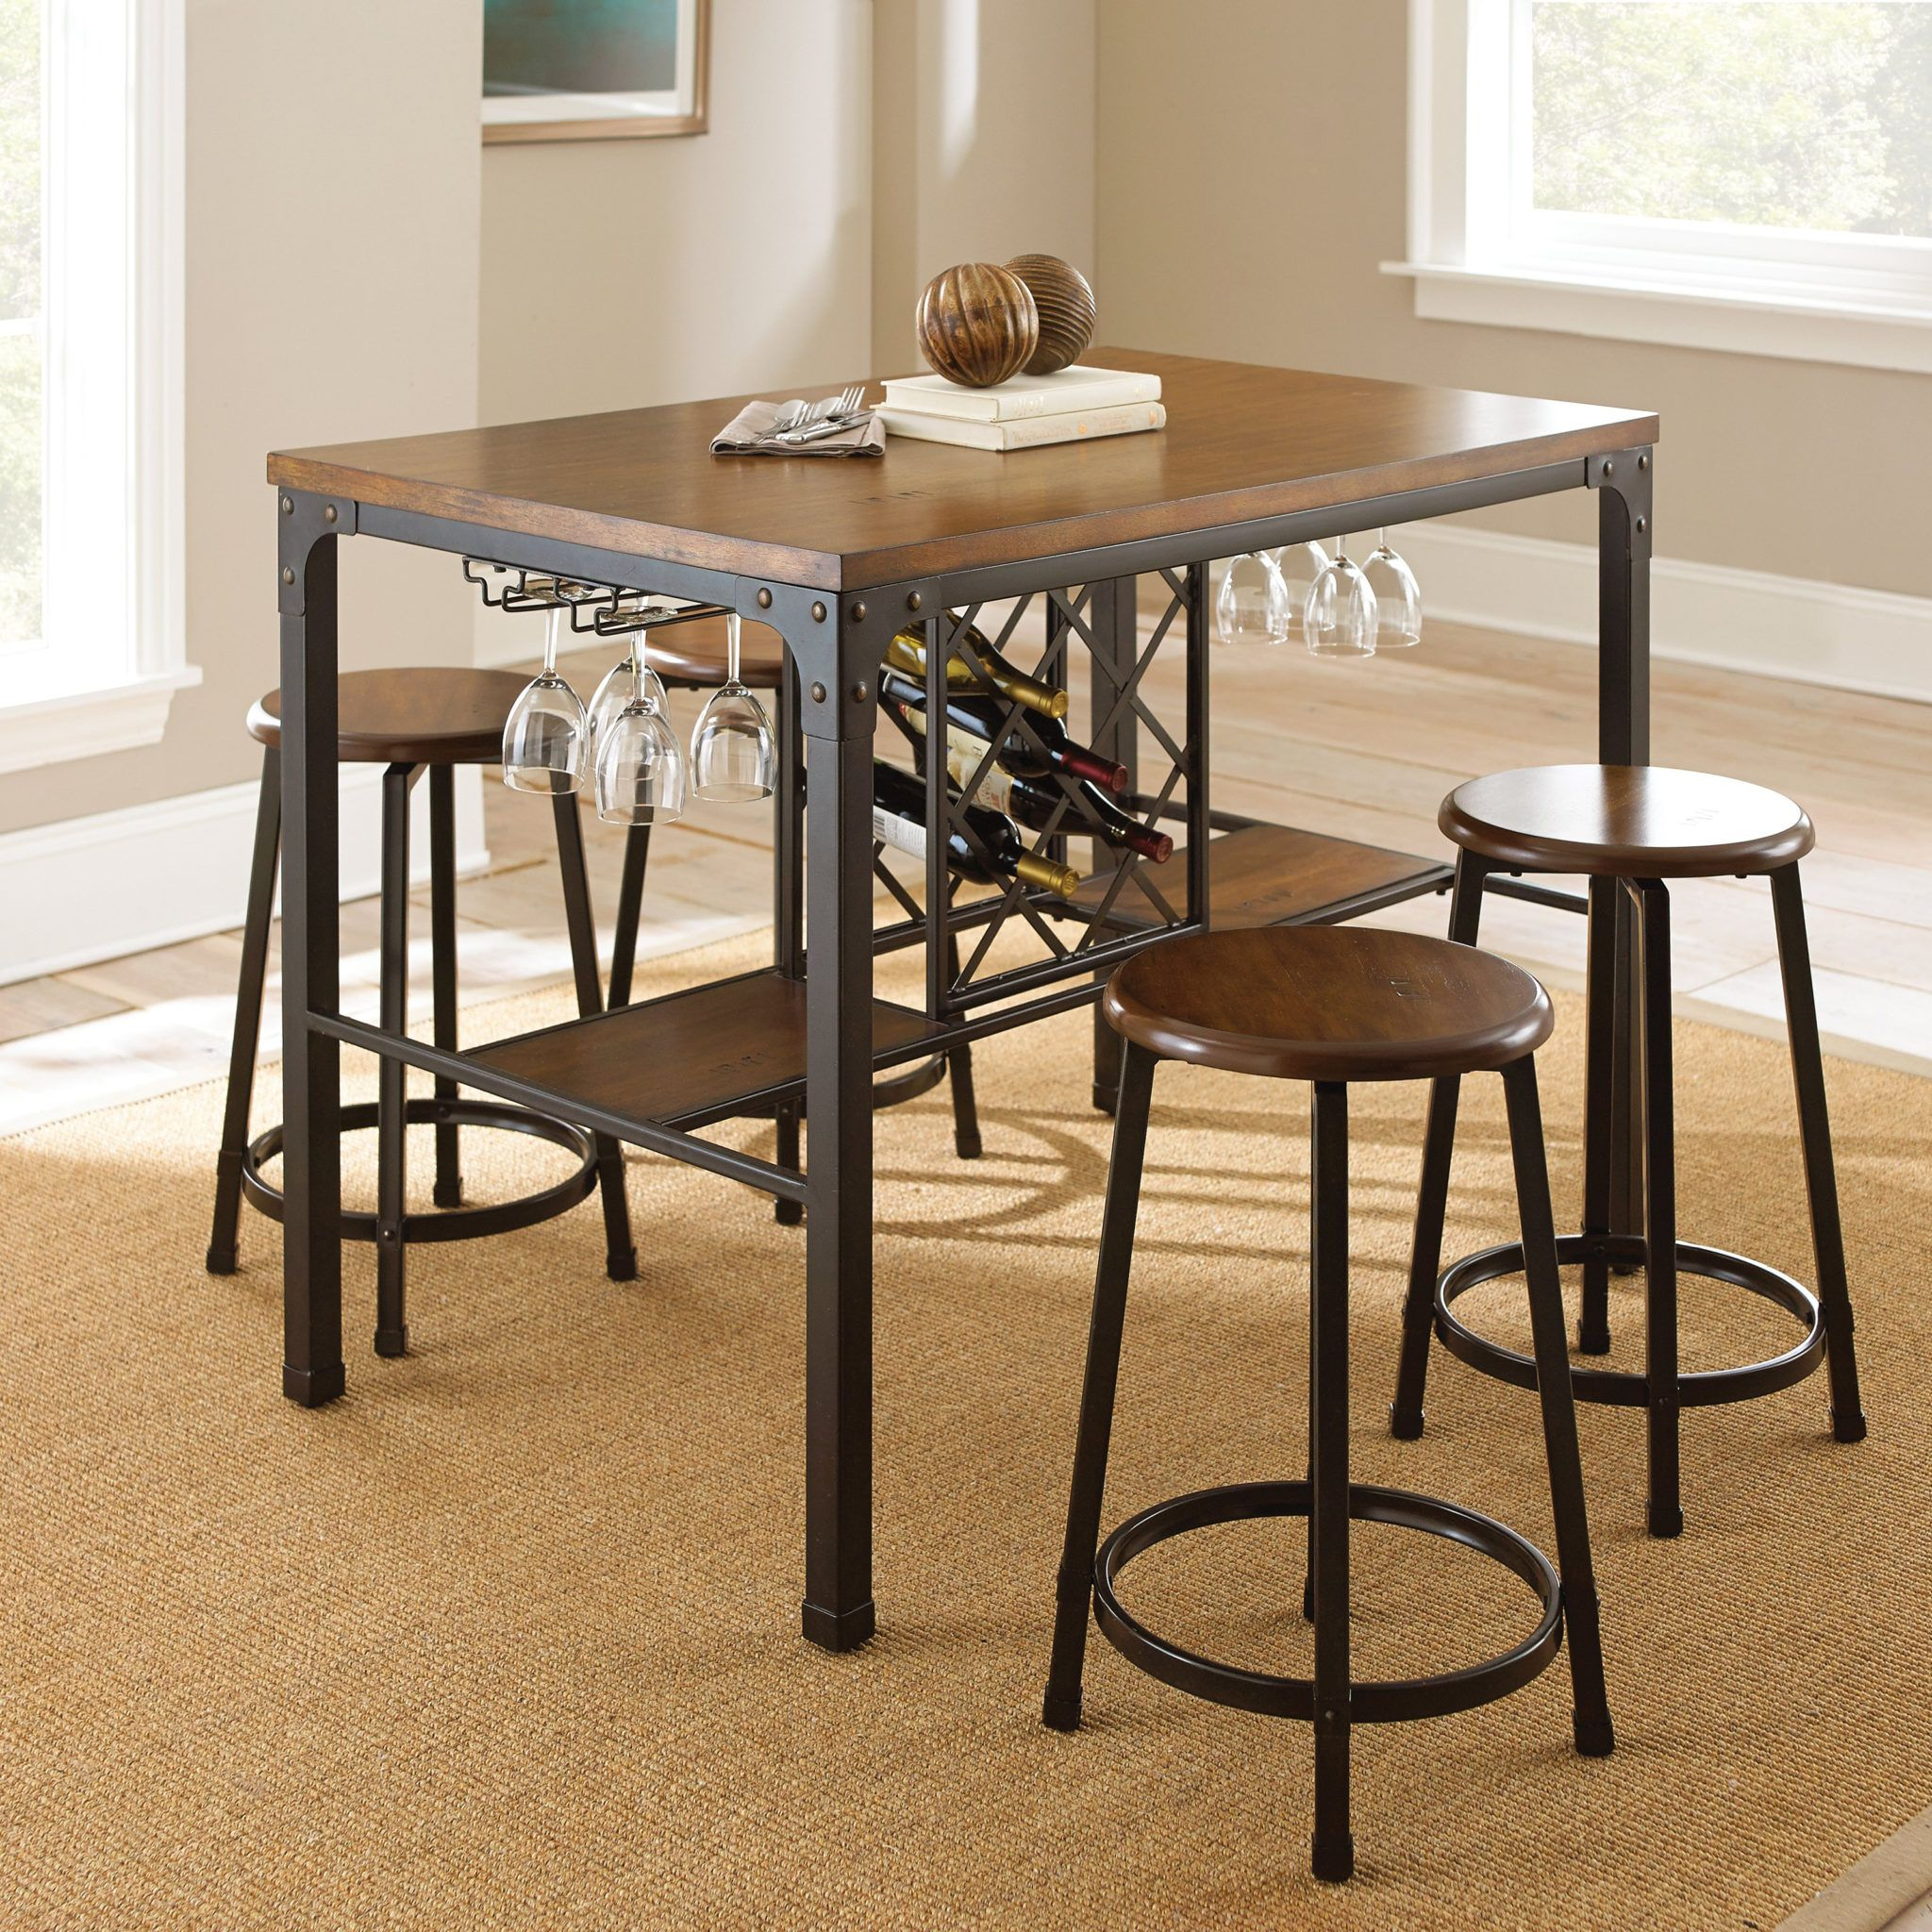 Creative Kitchen Table With Wine Rack Underneath Counter Height Dining Table Set Pub Table Sets Counter Height Pub Table